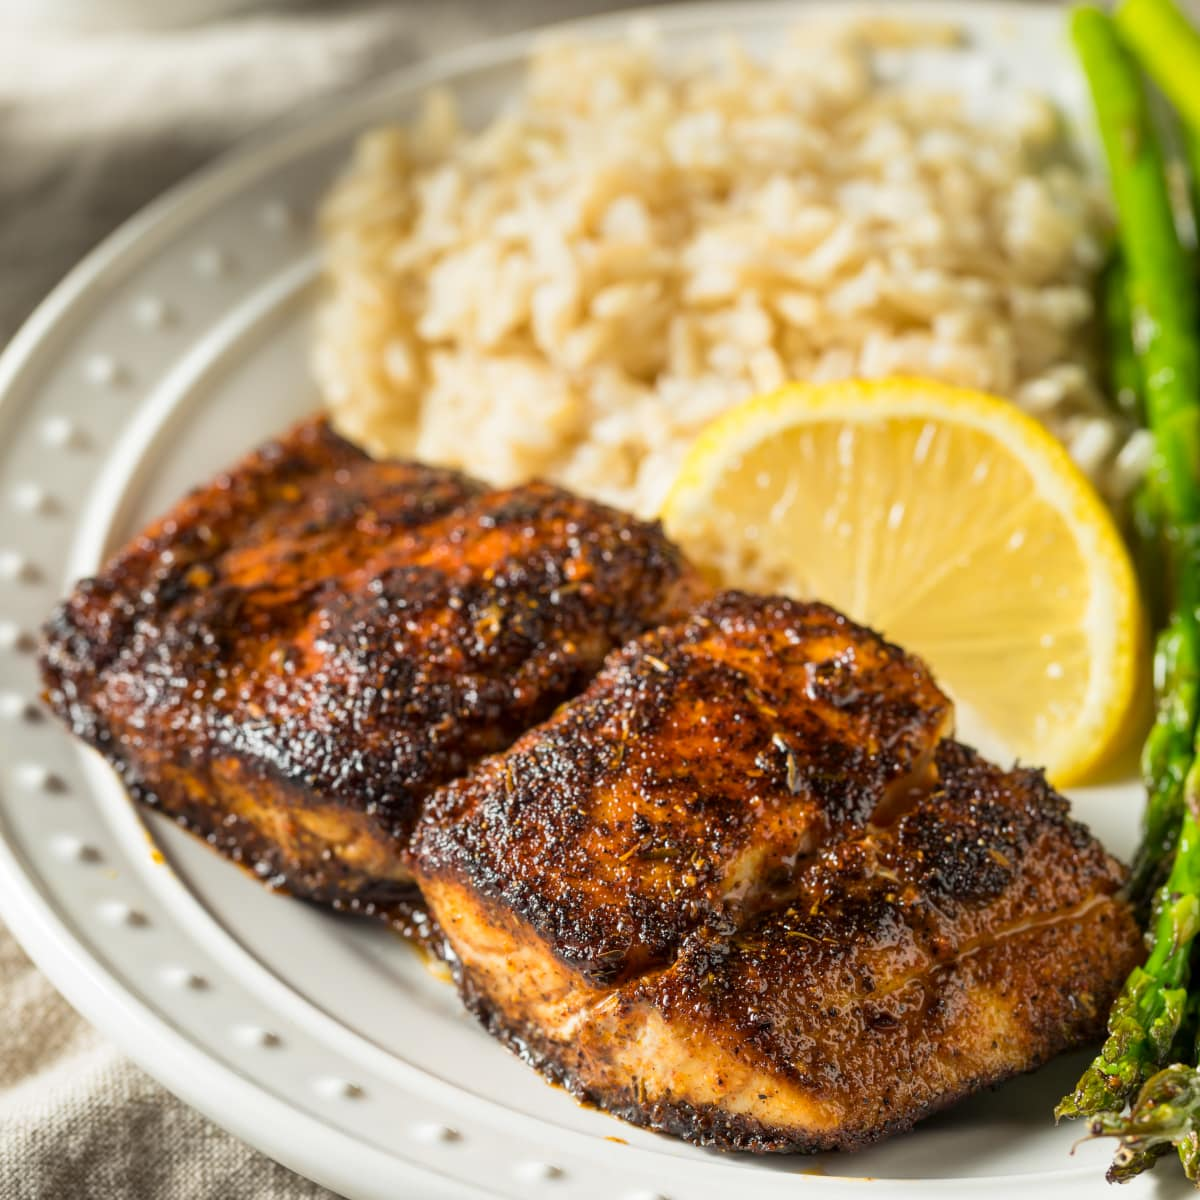 Blackened Mahi Mahi served on a white plate with rice, asparagus, and lemon slices.